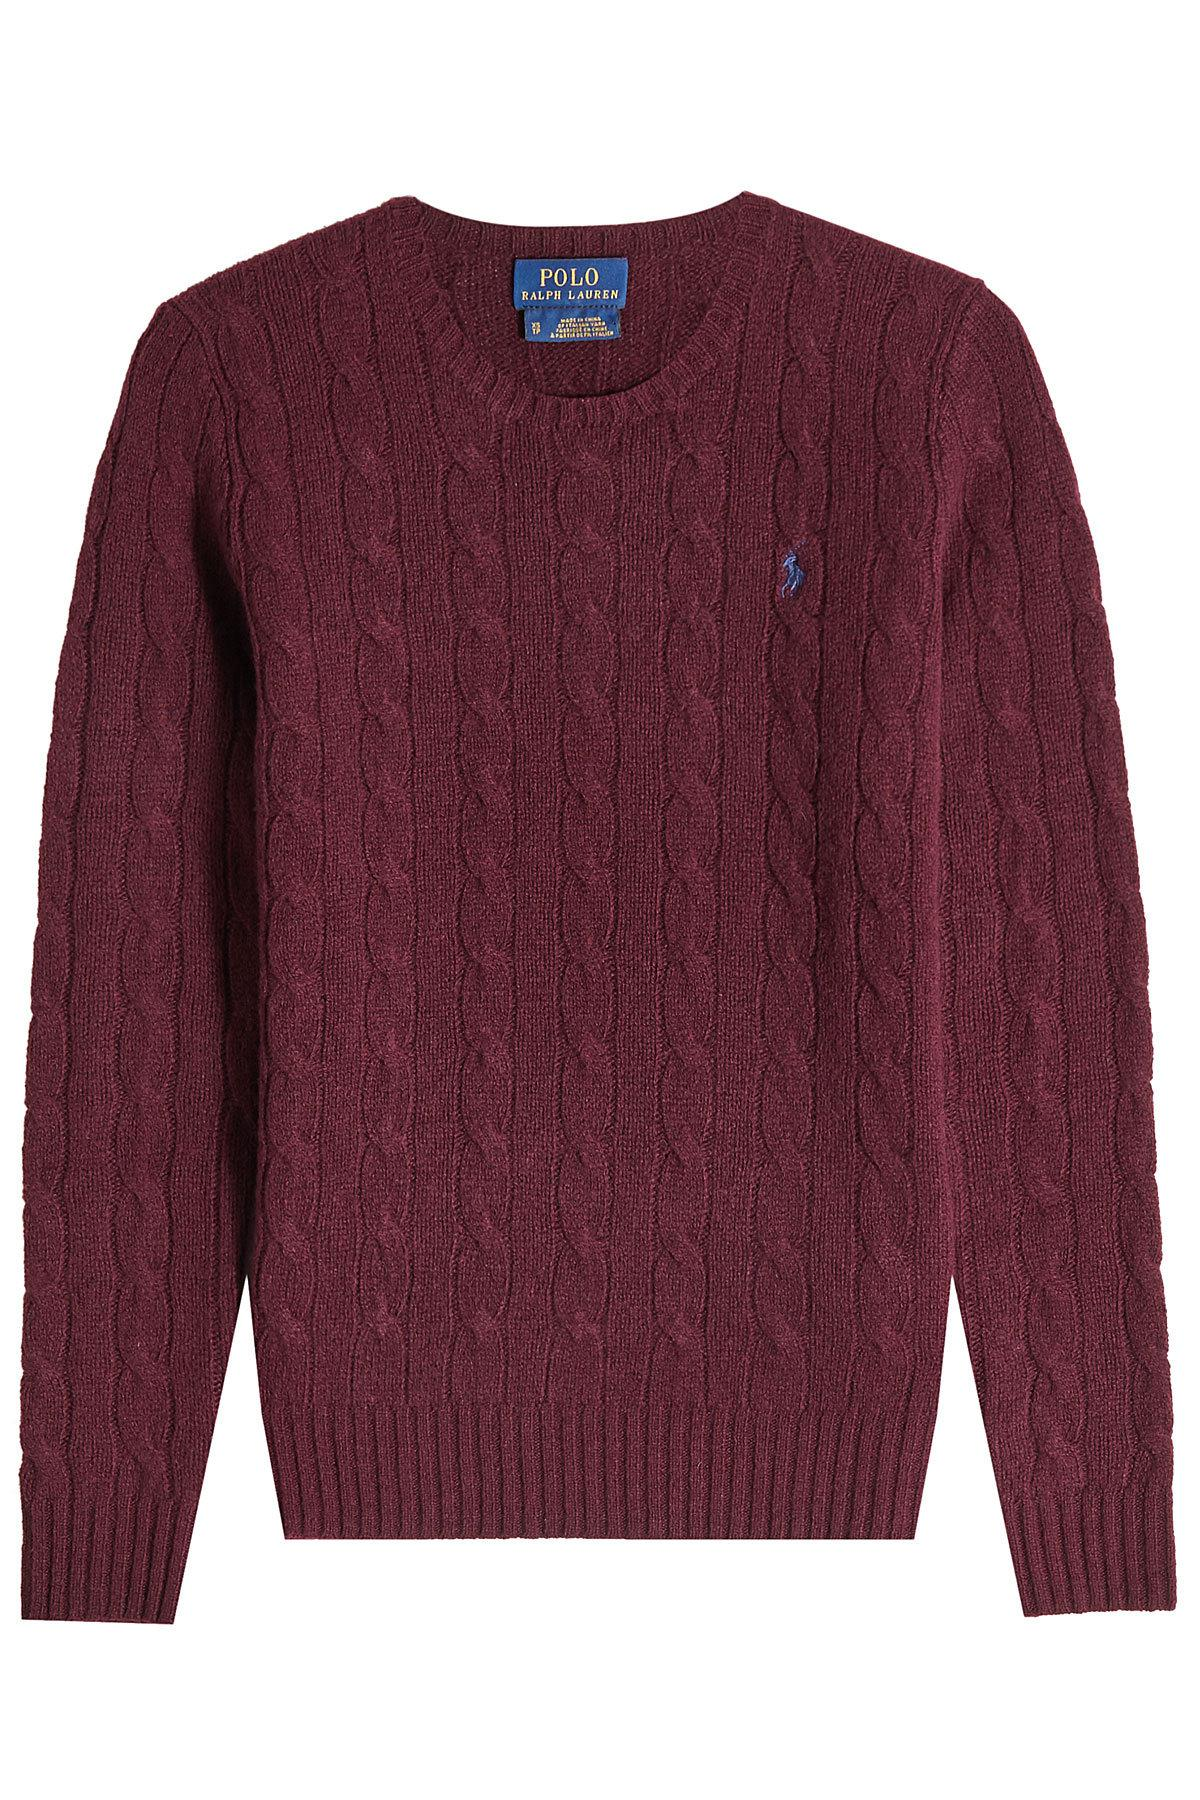 lyst polo ralph lauren wool cable knit pullover. Black Bedroom Furniture Sets. Home Design Ideas